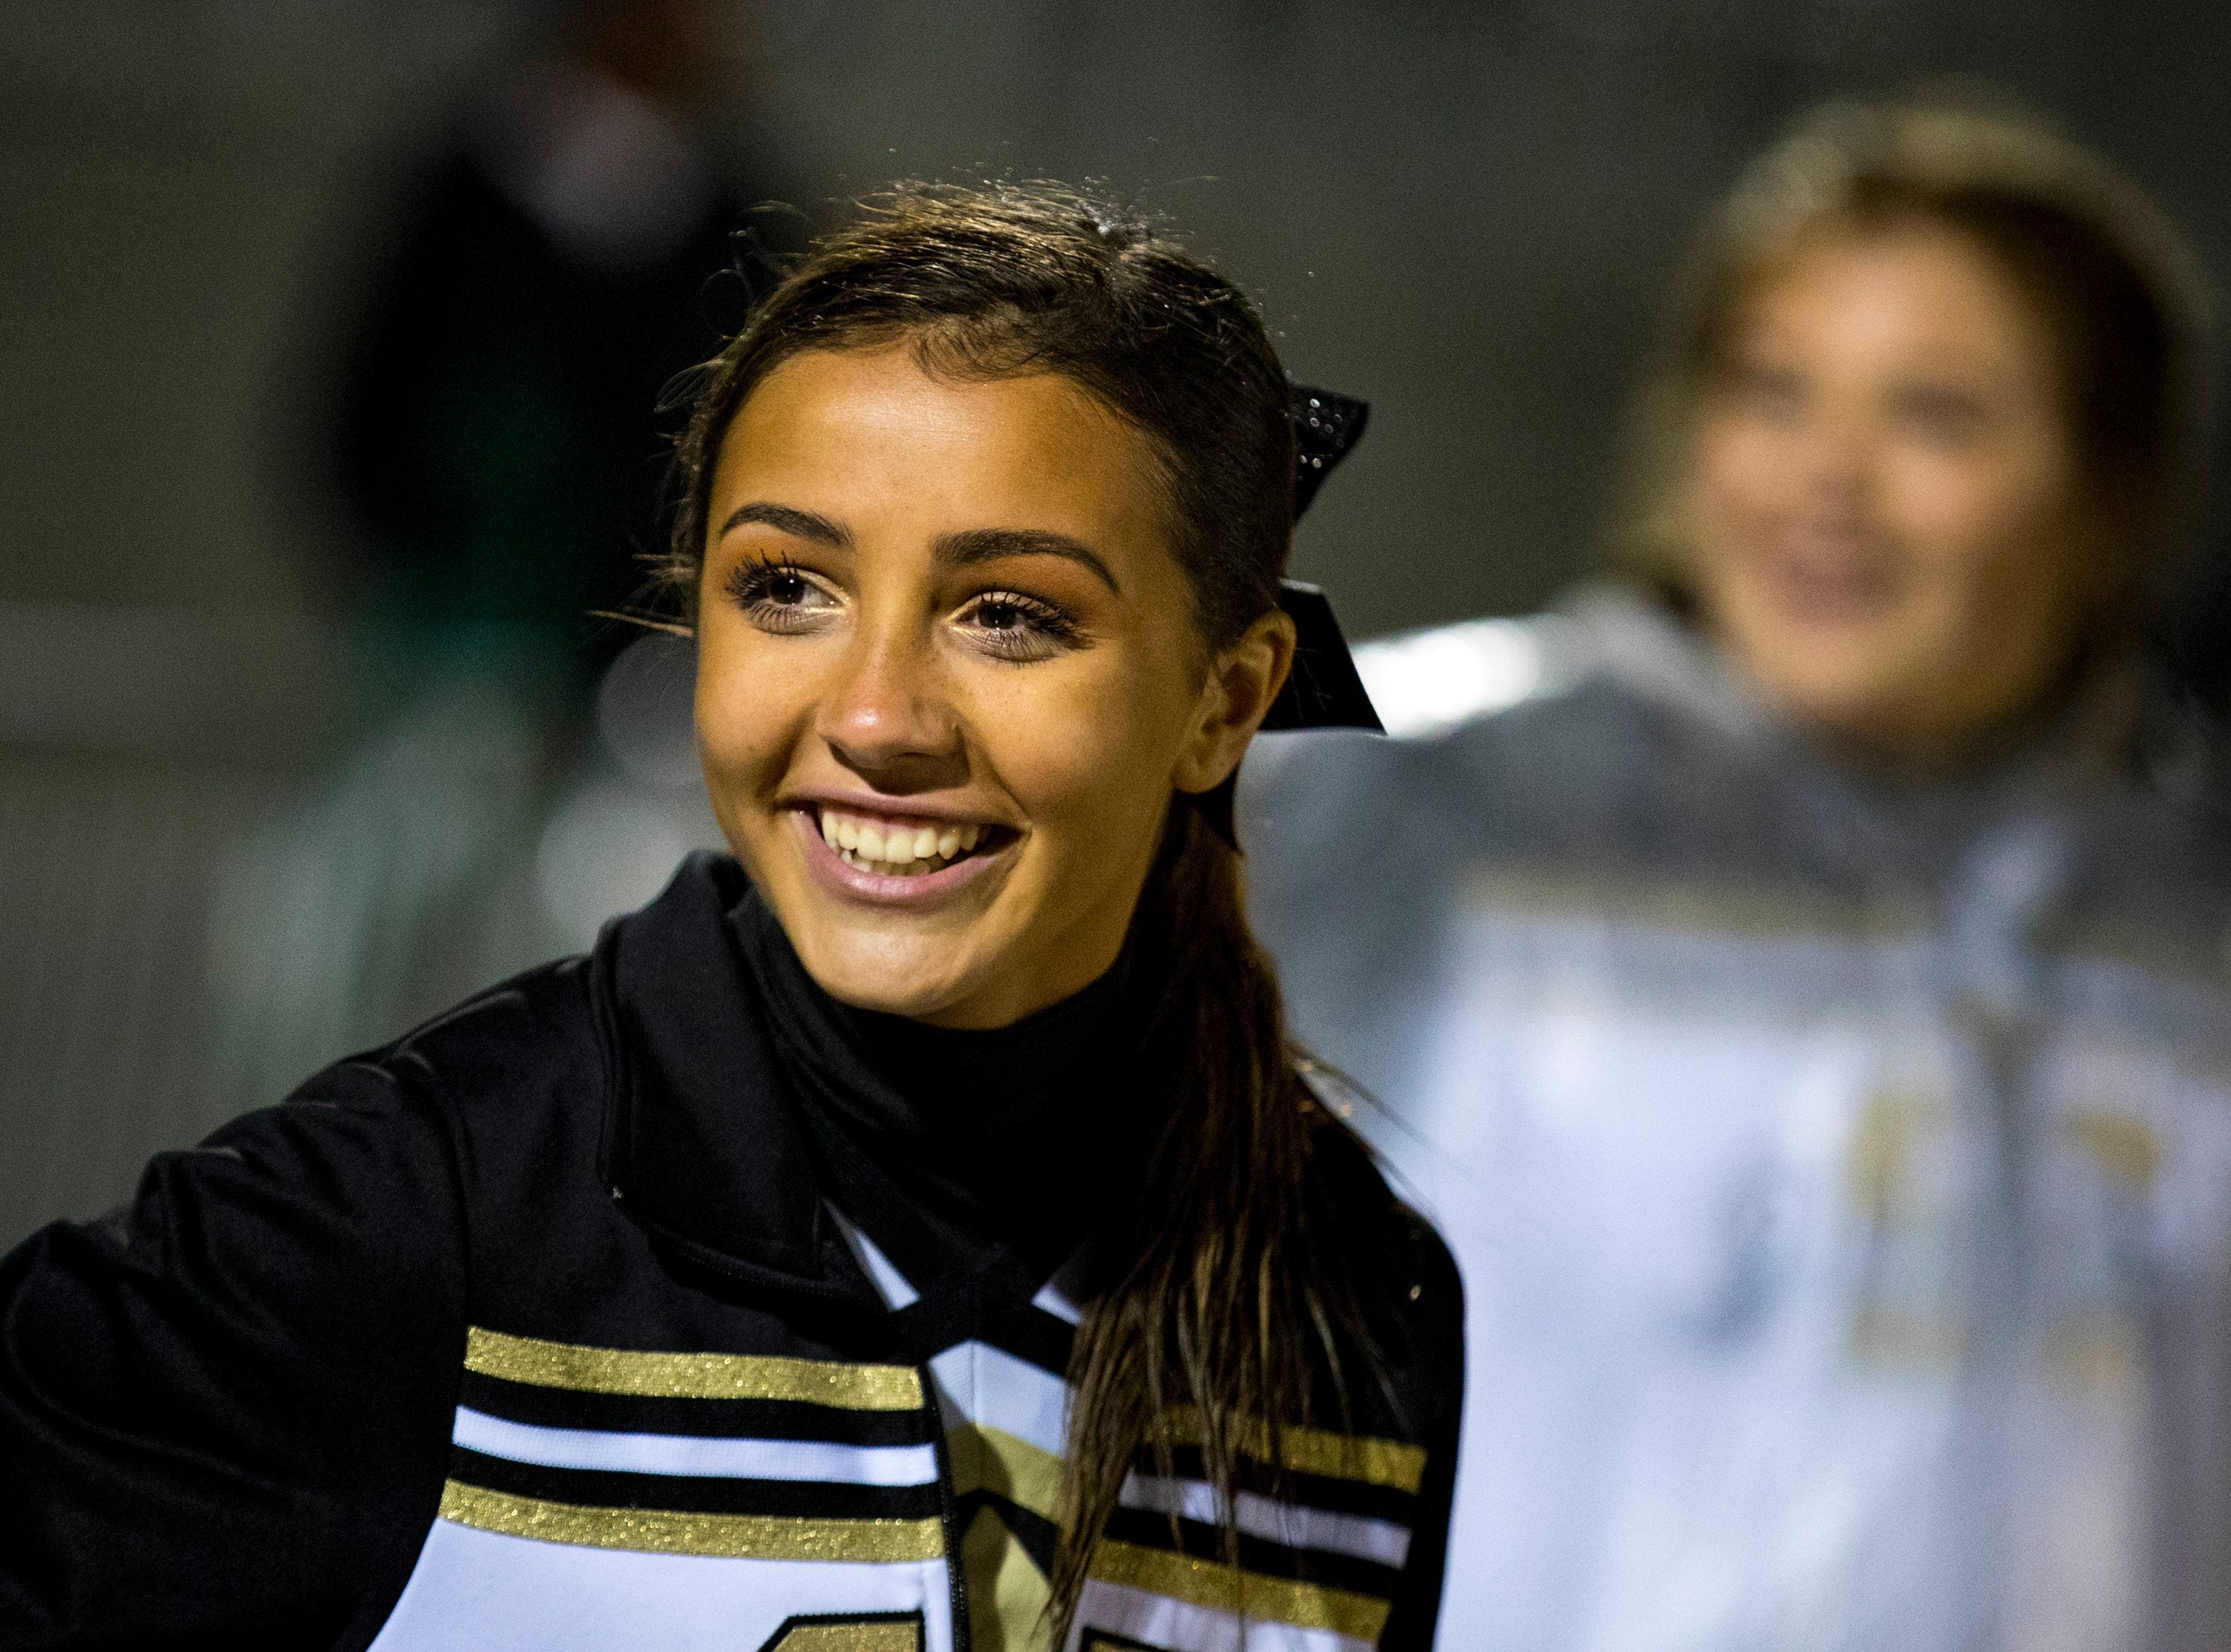 Springfield's cheerleader Gabby Rivera smiles during Springfield's game against Chester County at Springfield High School in Springfield on Friday, Nov. 2, 2018.